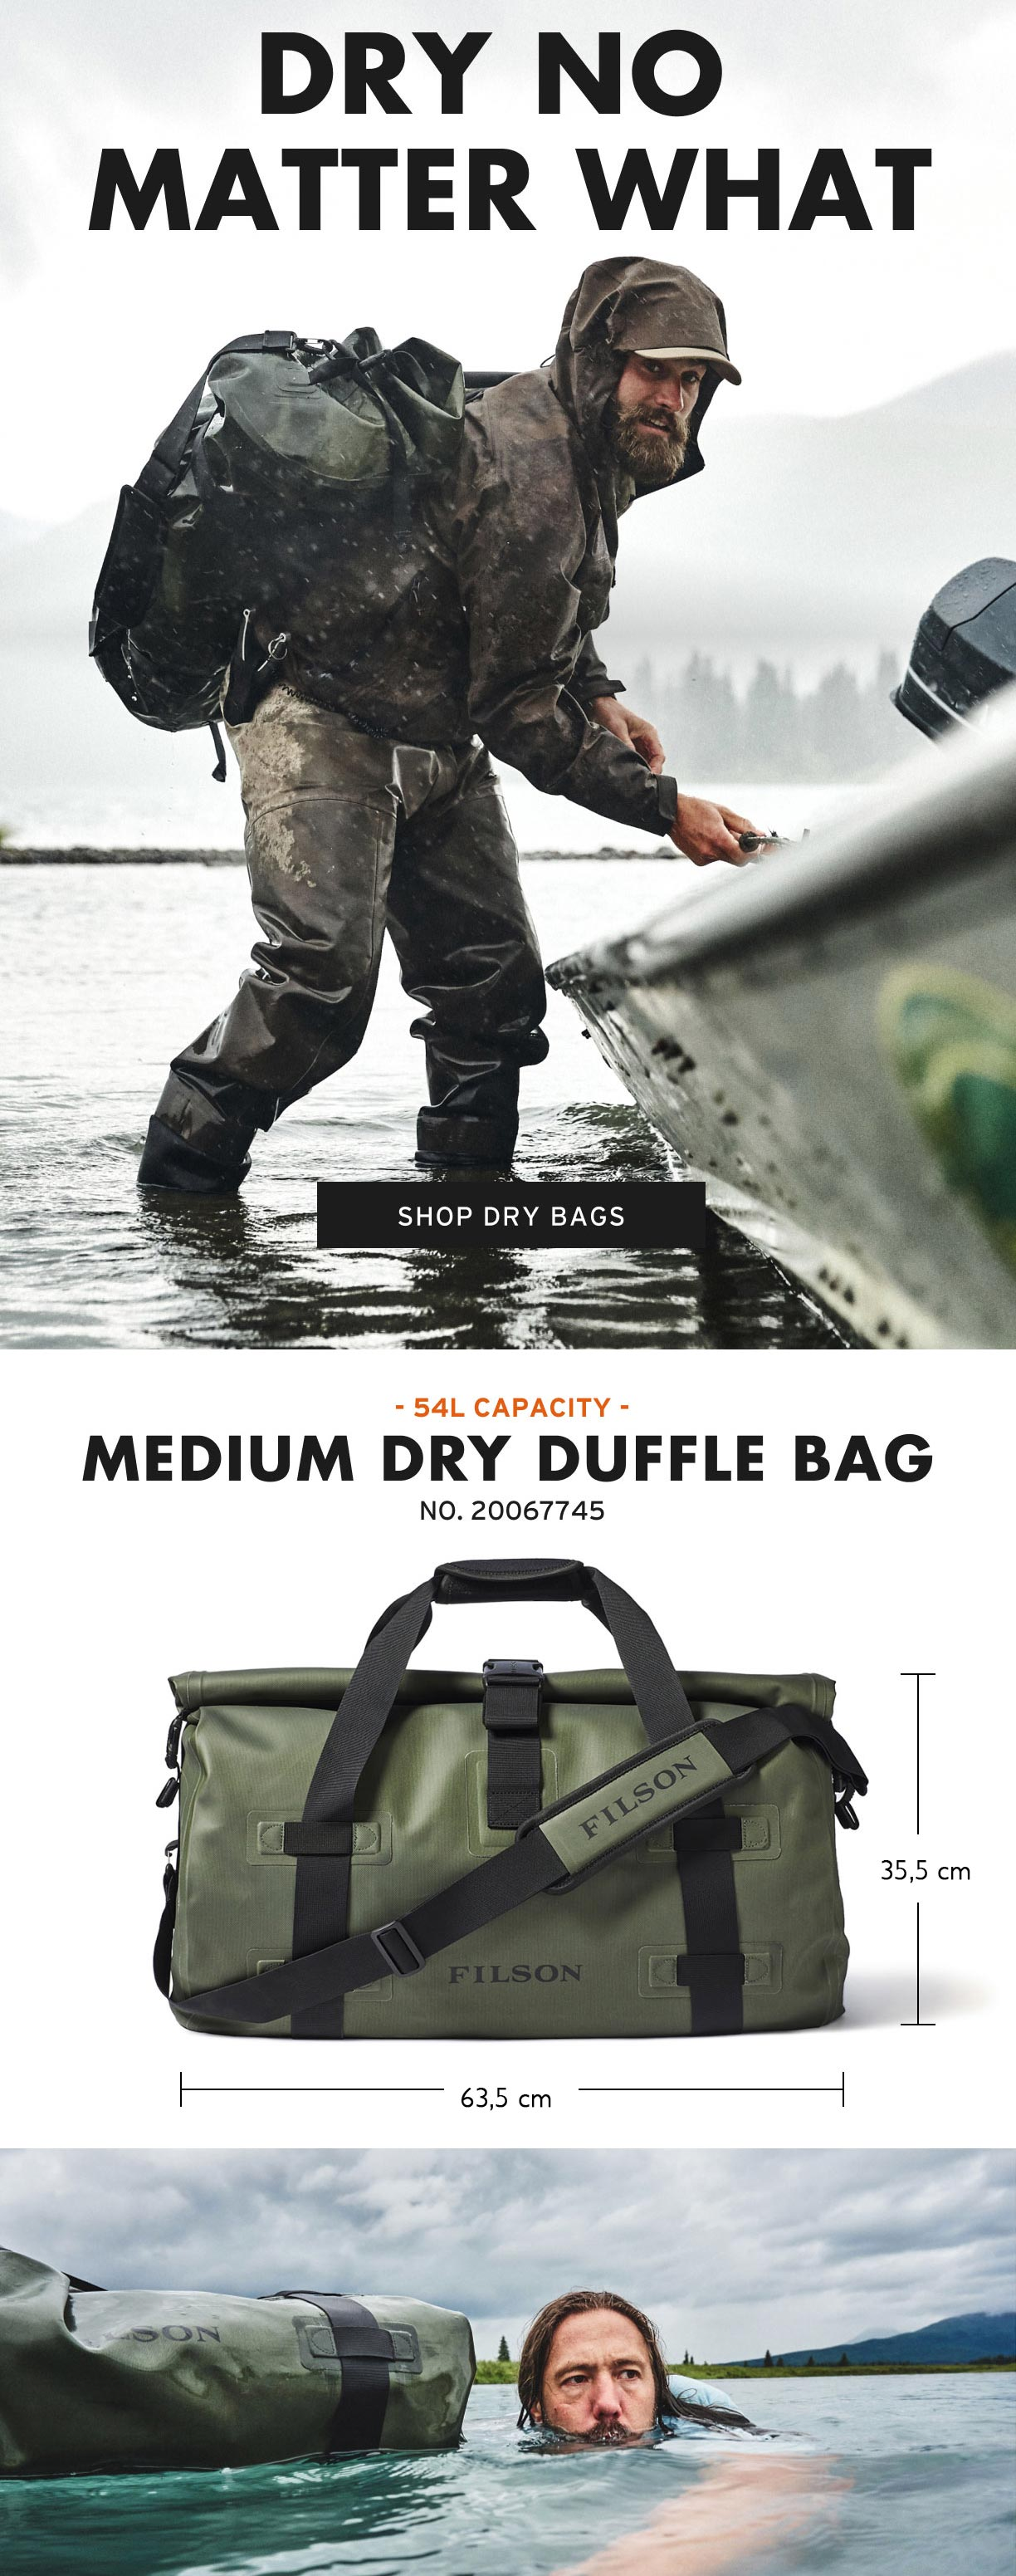 Filson Dry Duffle Medium Productinformatie